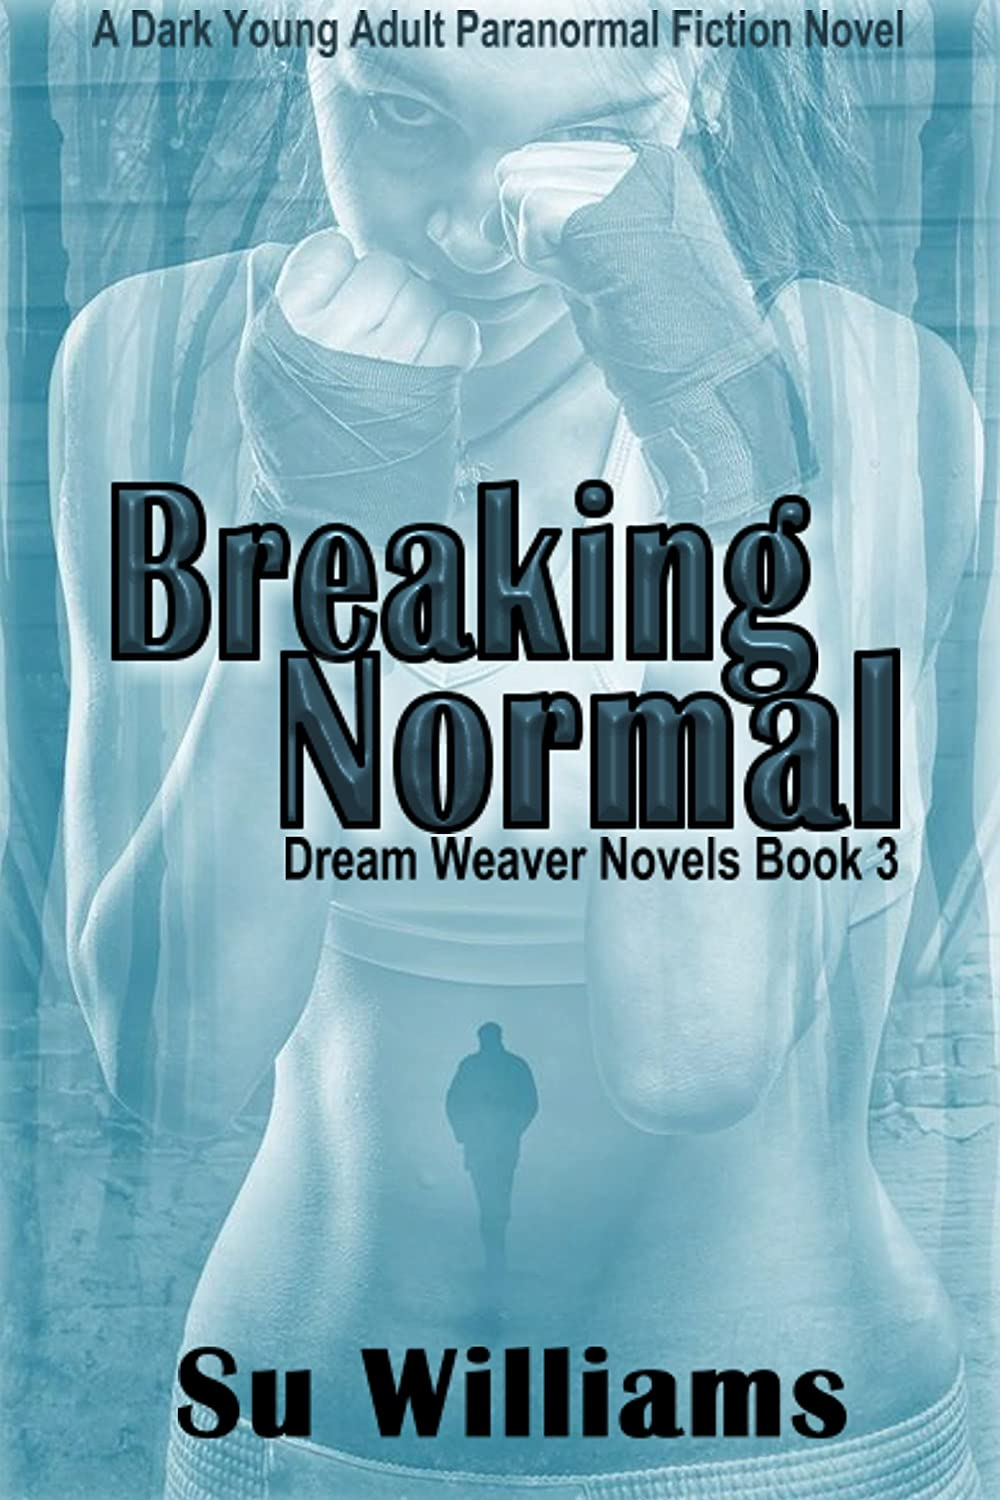 BREAKING NORMAL - Dream Weaver Novels Book 3 by Su Williams